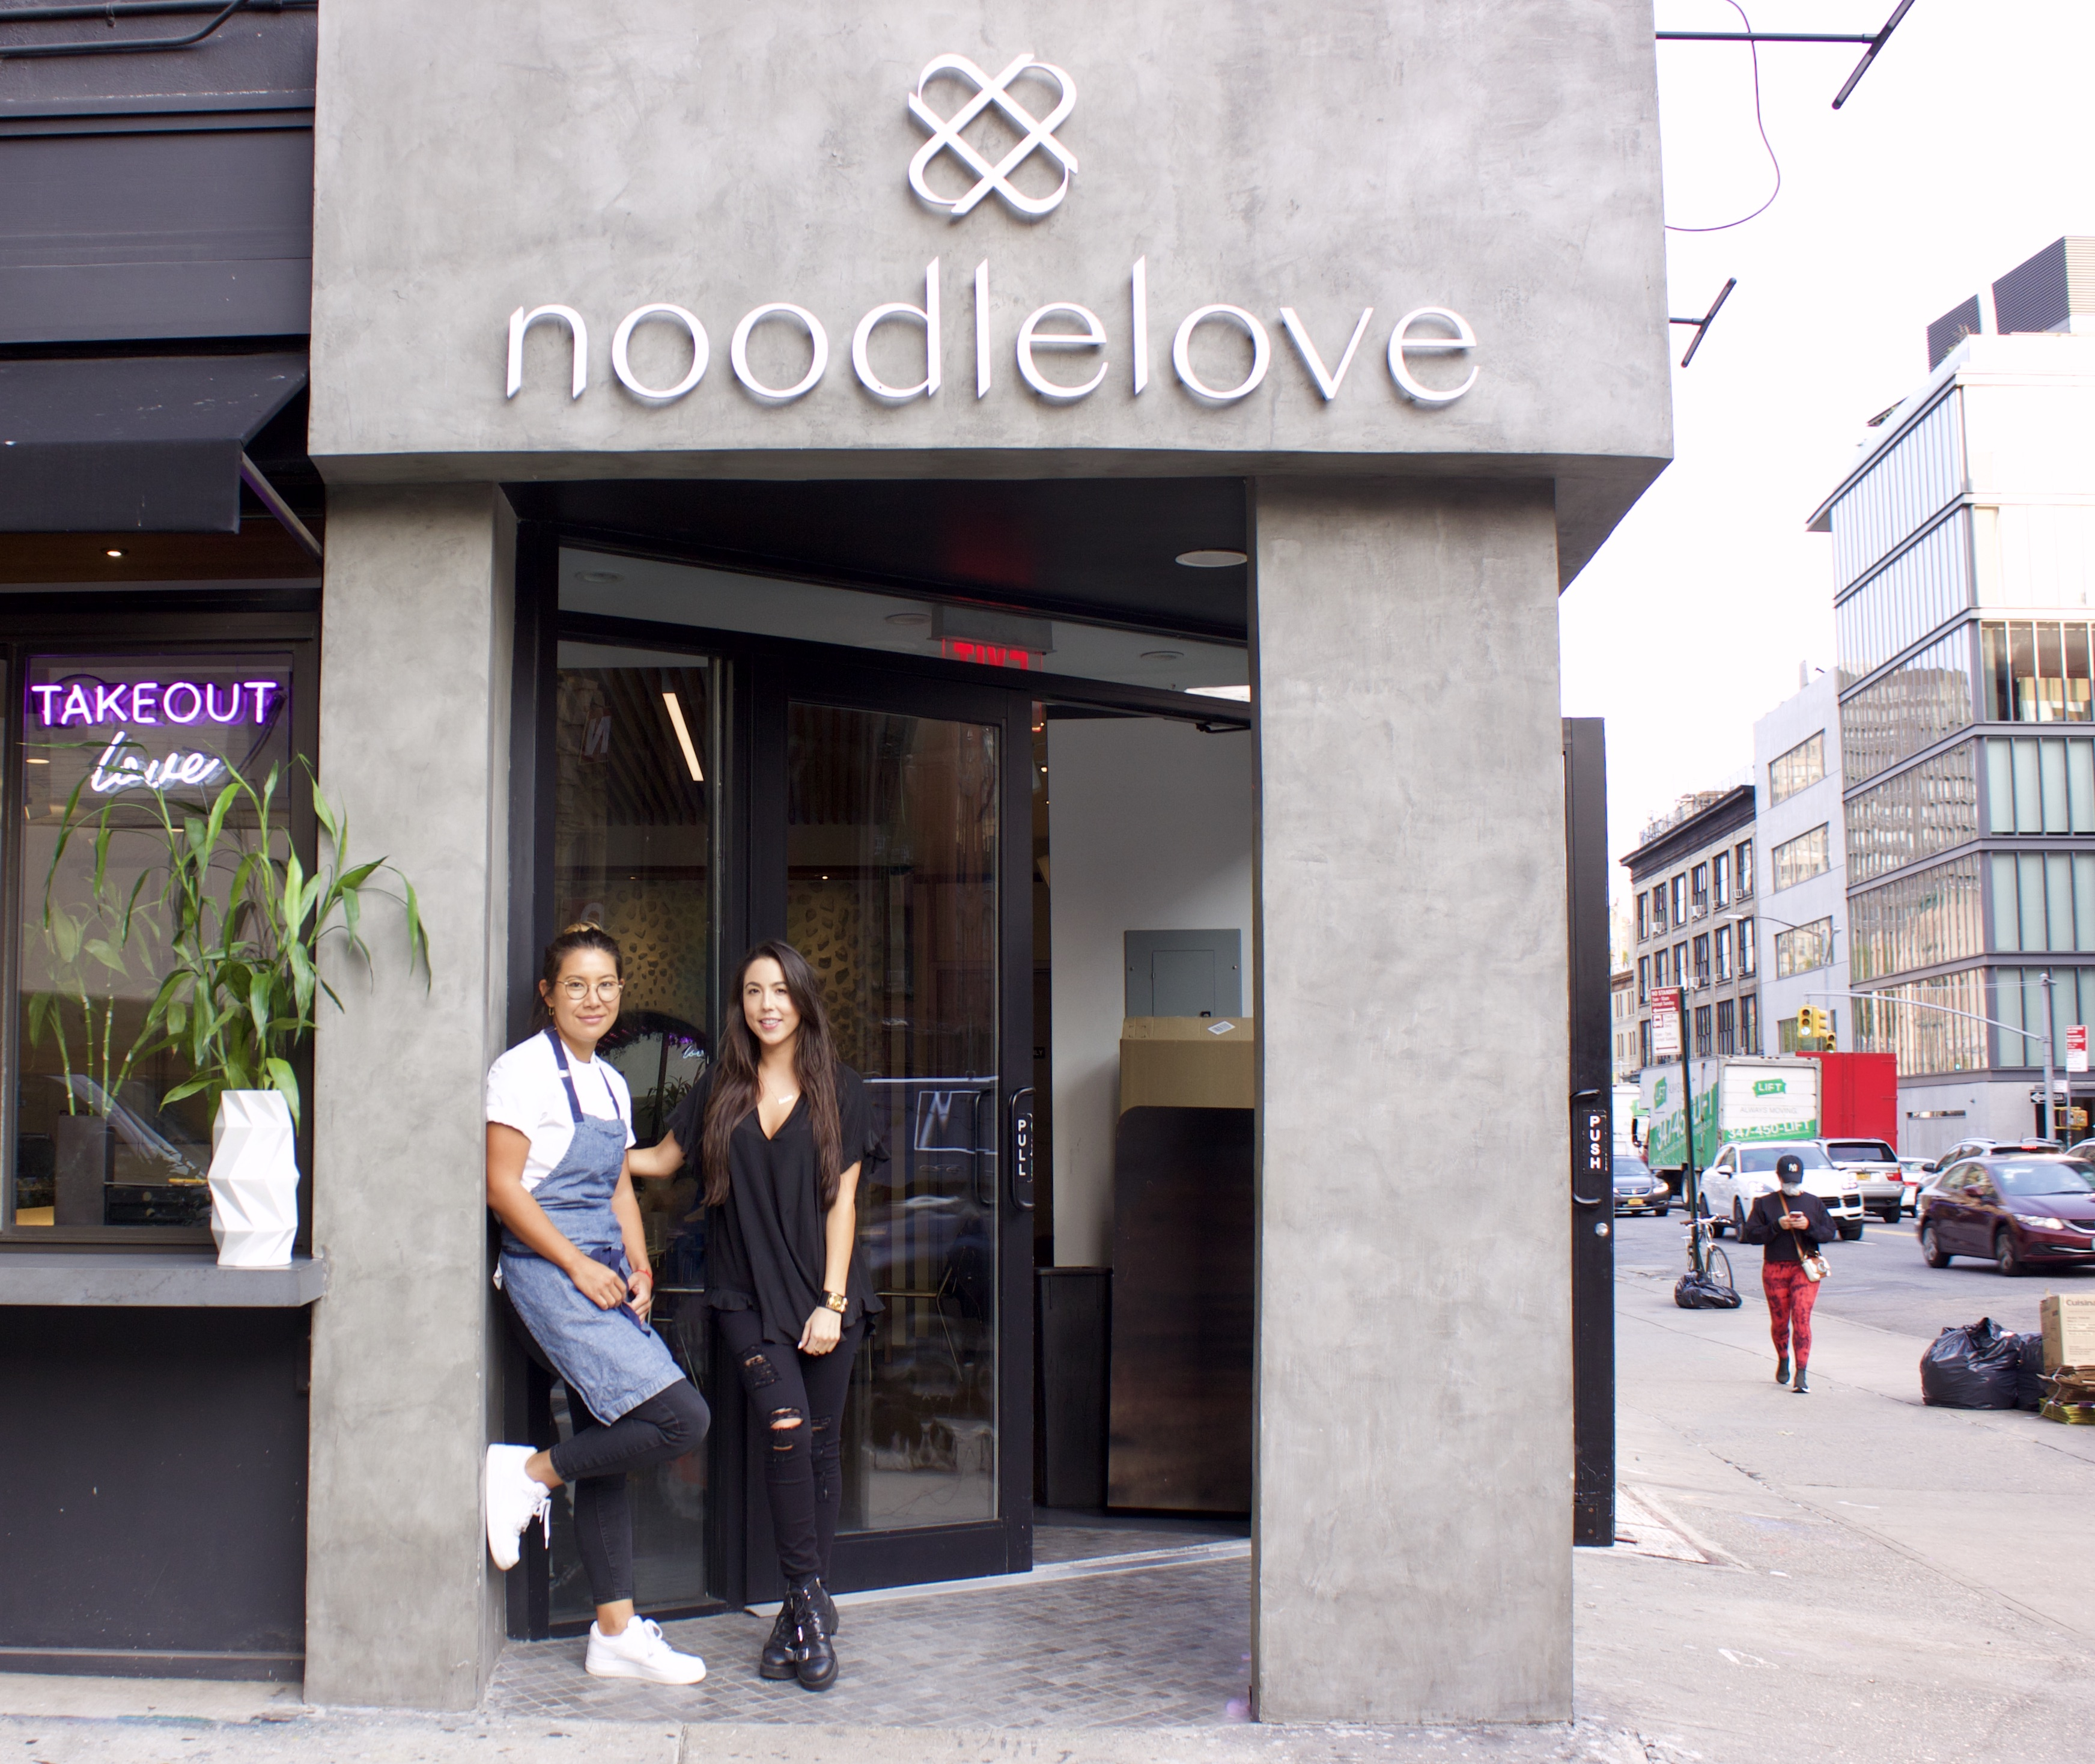 Two women standing in front of a restaurant with a gray exterior